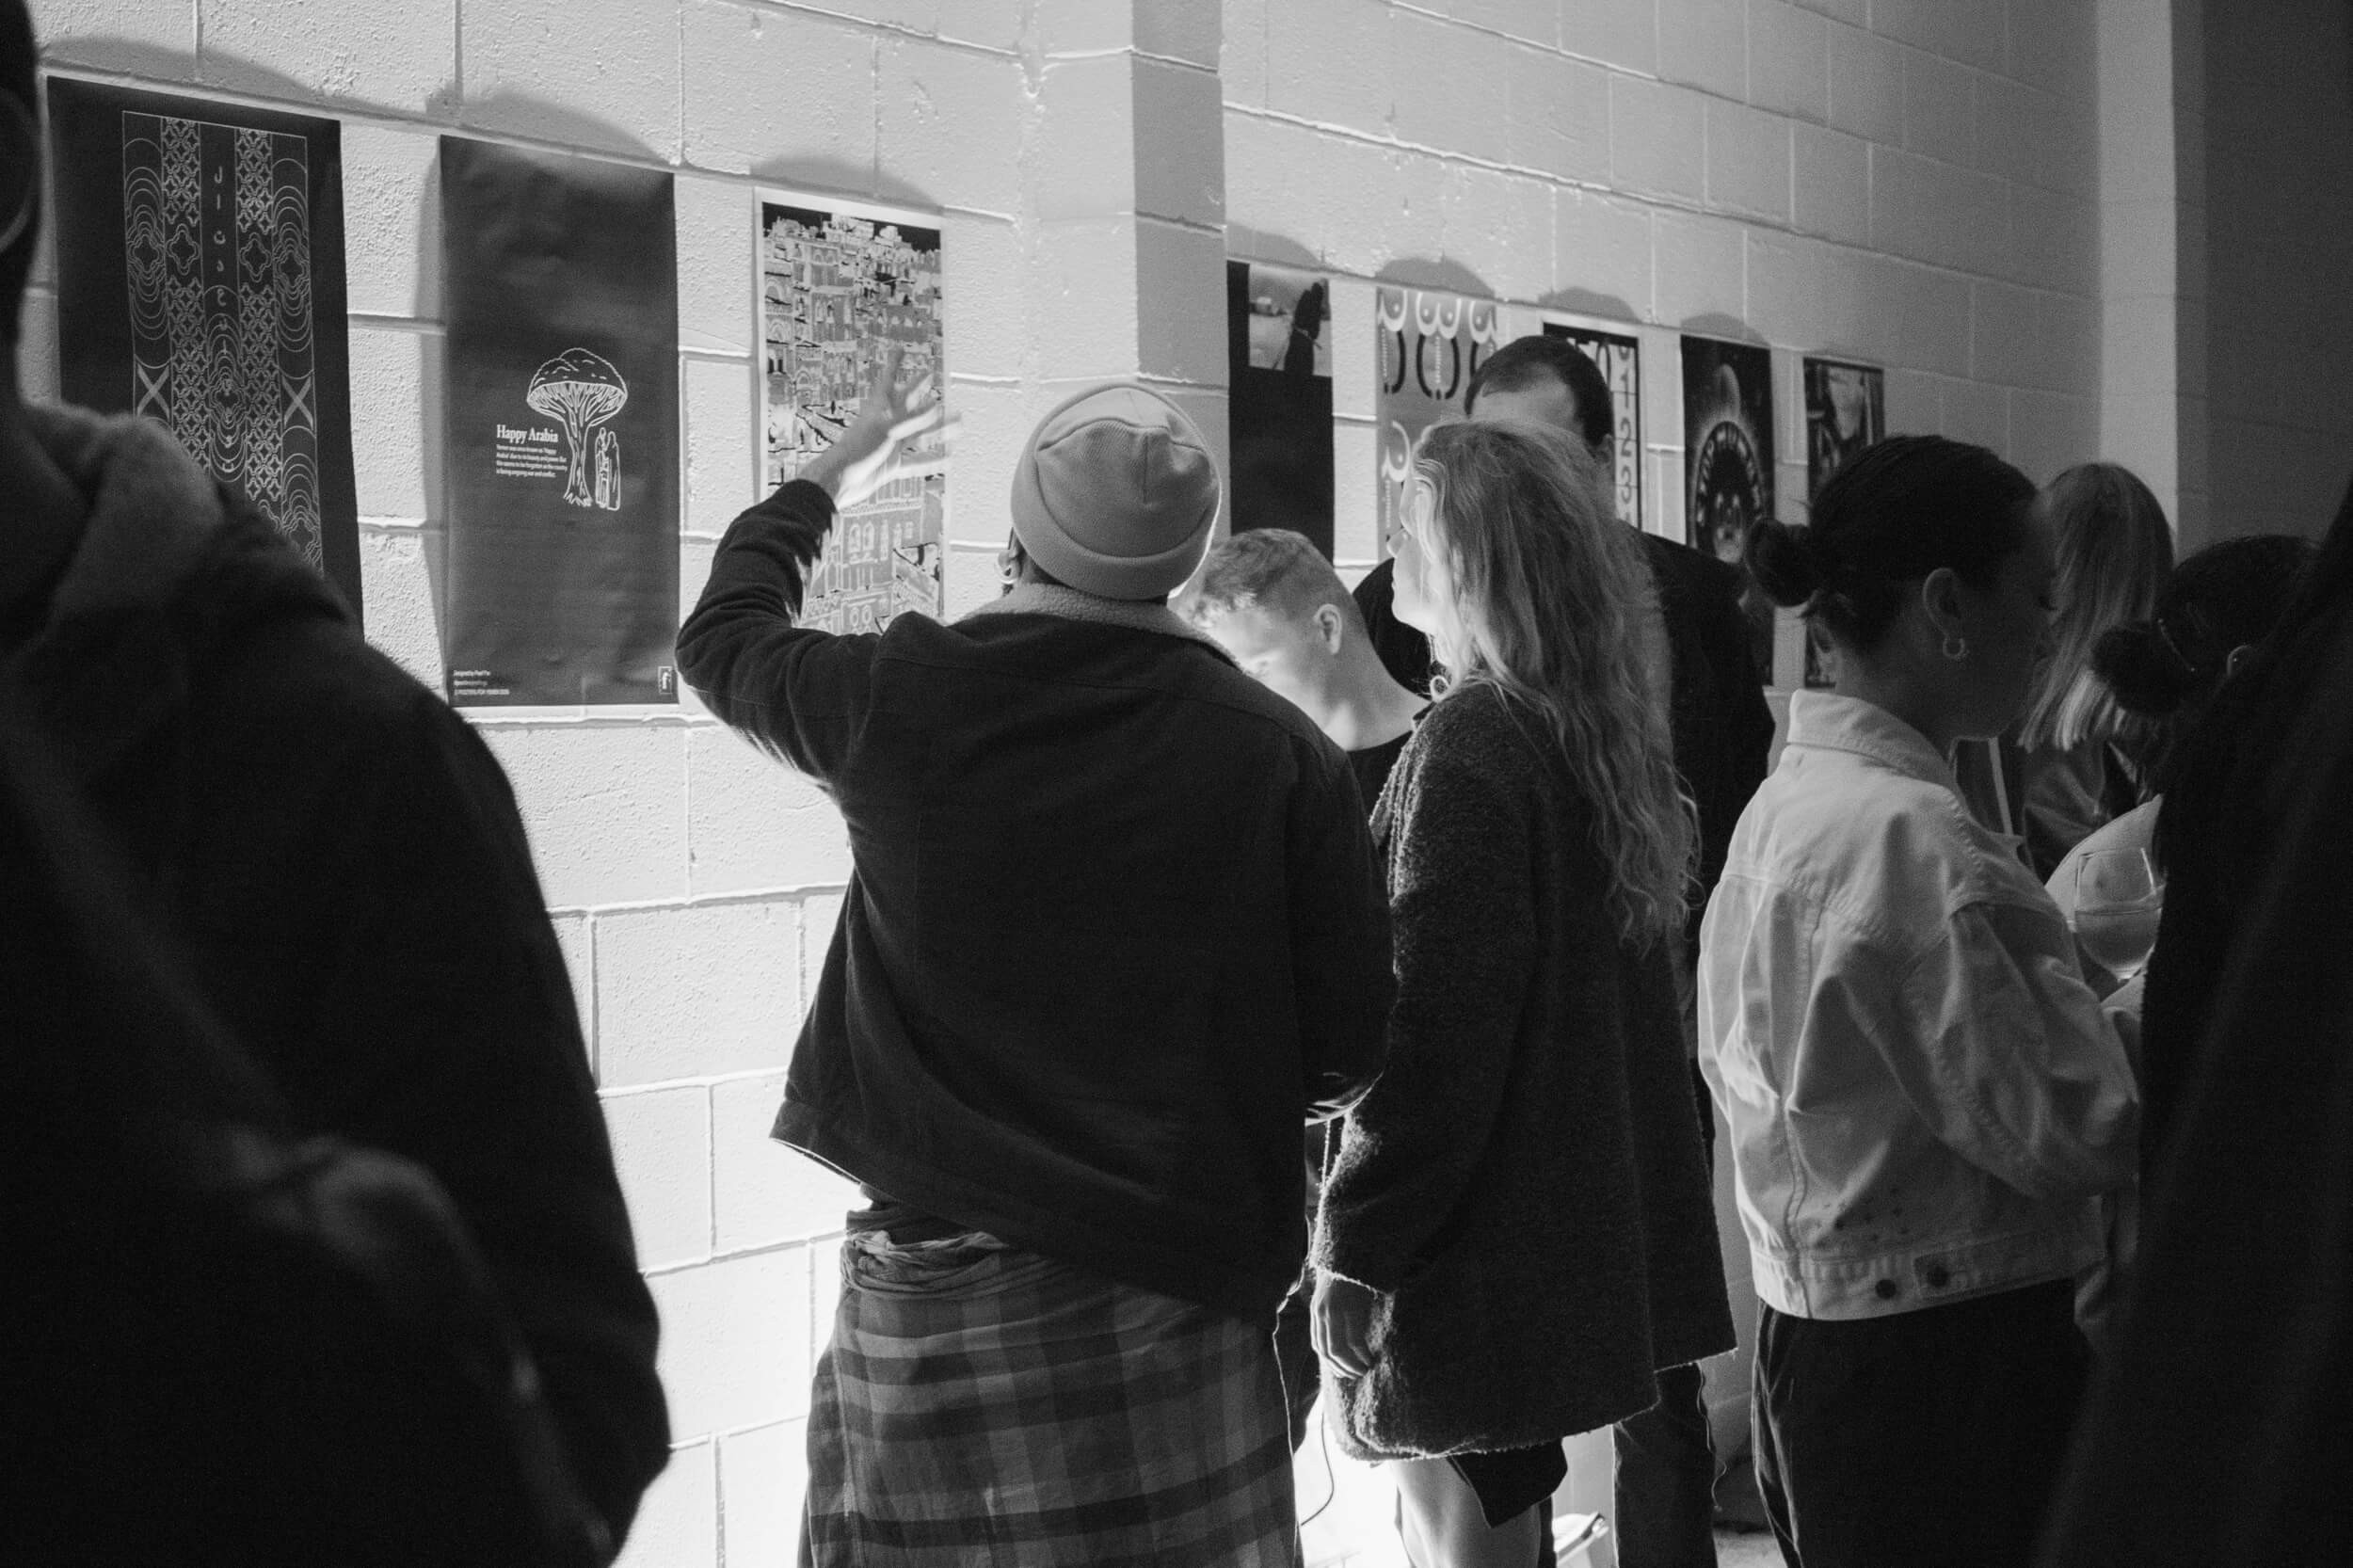 People looking at posters on the wall at the Faxed exhibition